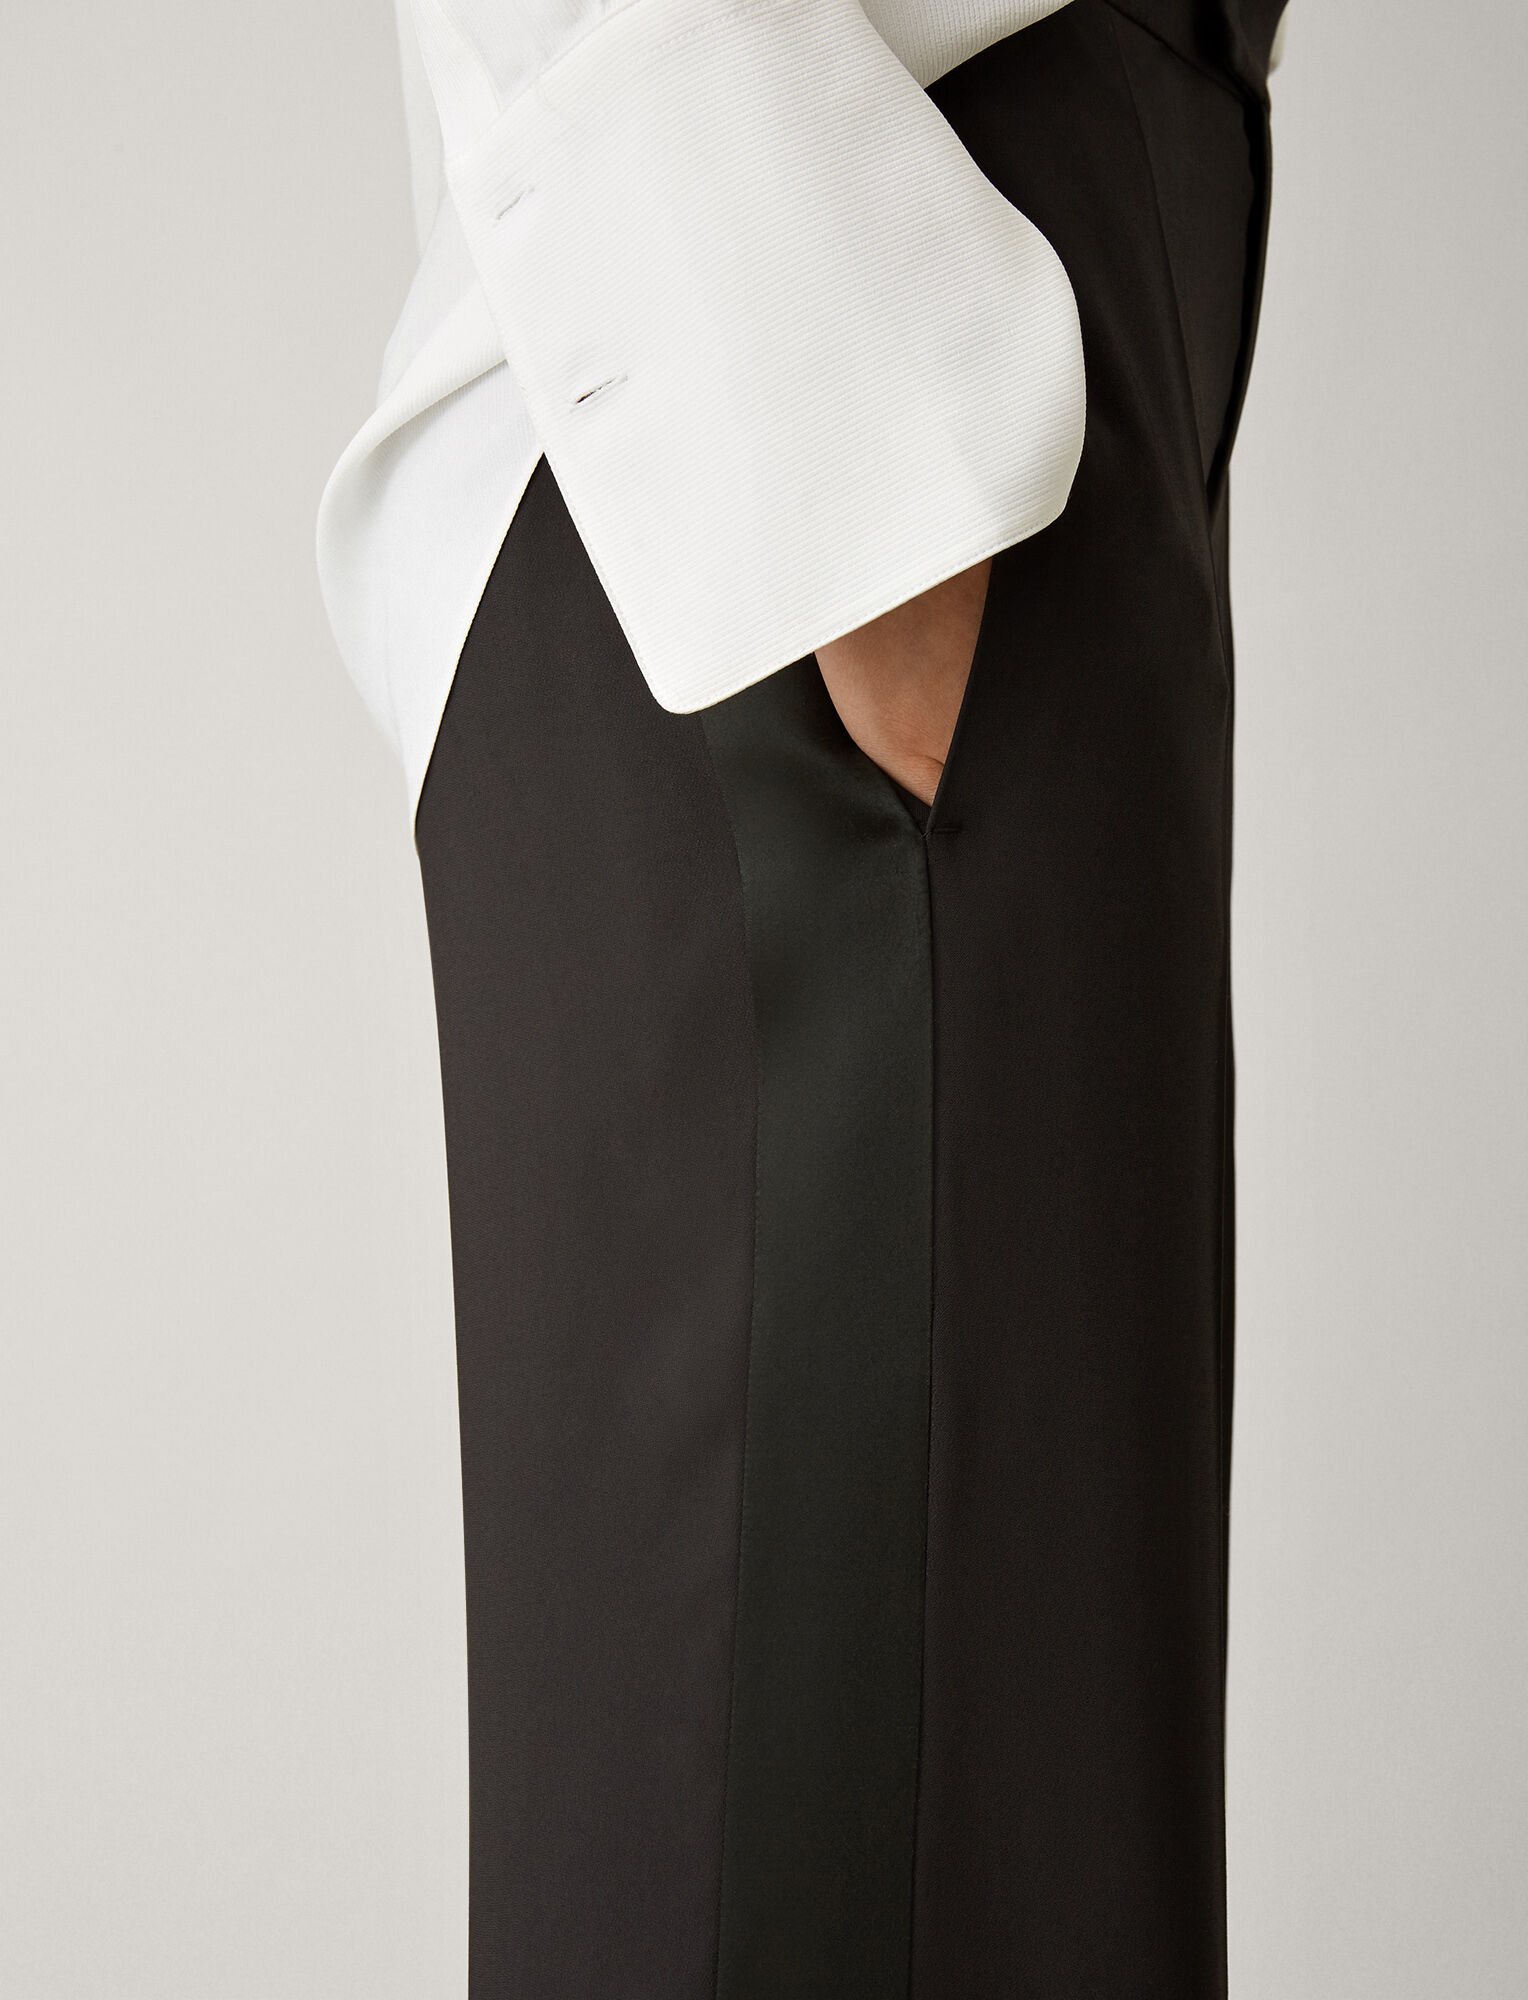 Joseph, Ferry Fluid Tuxedo Trousers, in BLACK